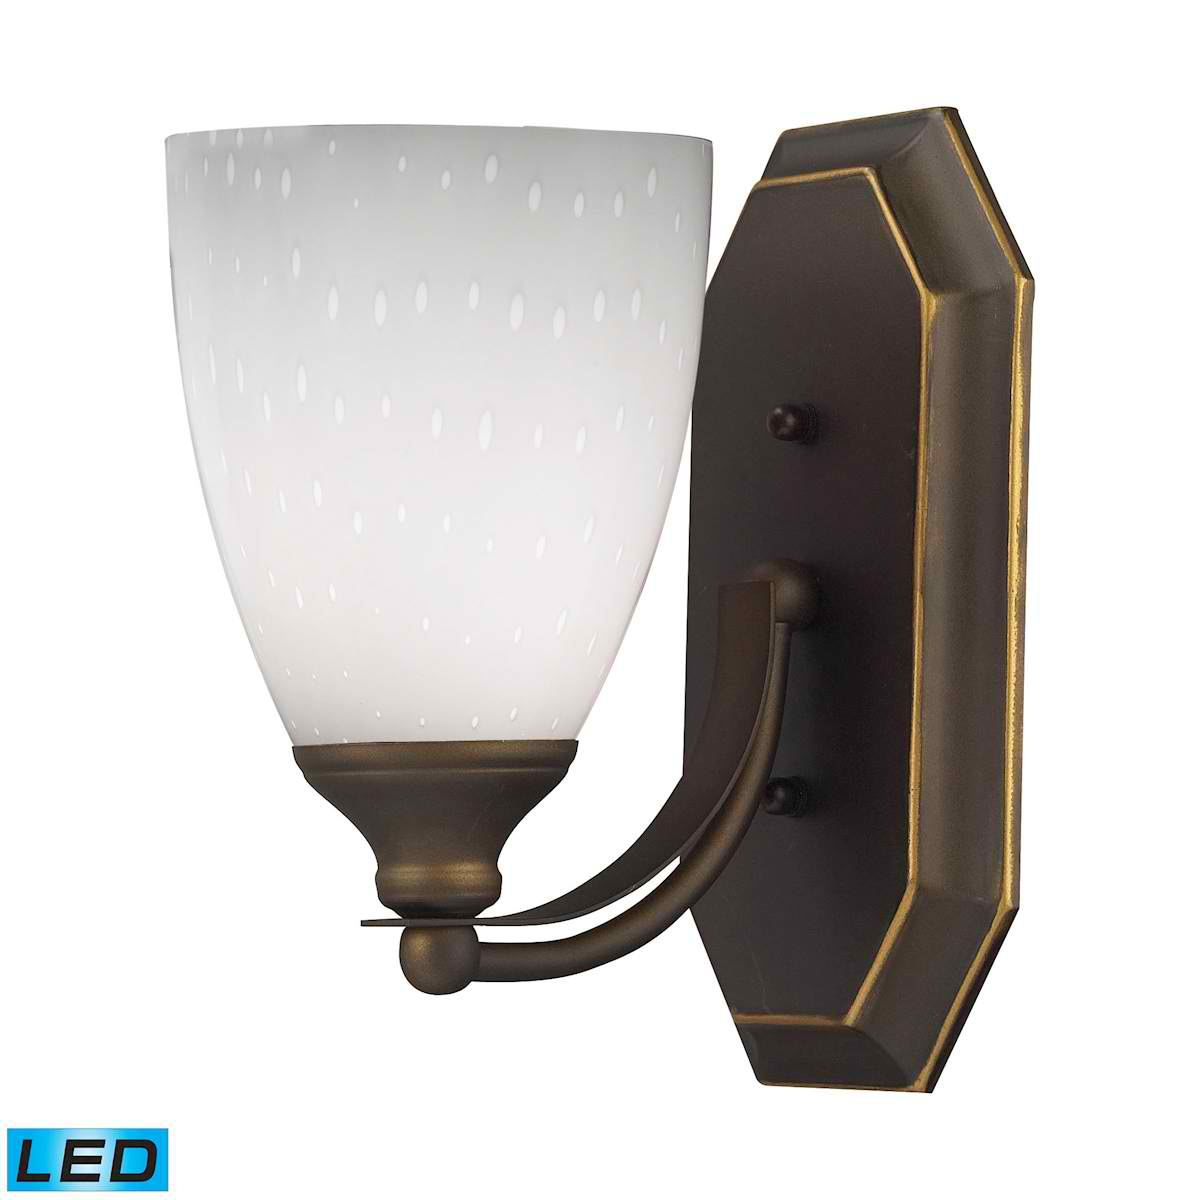 1 Light Vanity in Aged Bronze and Simply White Glass - LED Offering Up To 800 Lumens (60 Watt Equivalent)